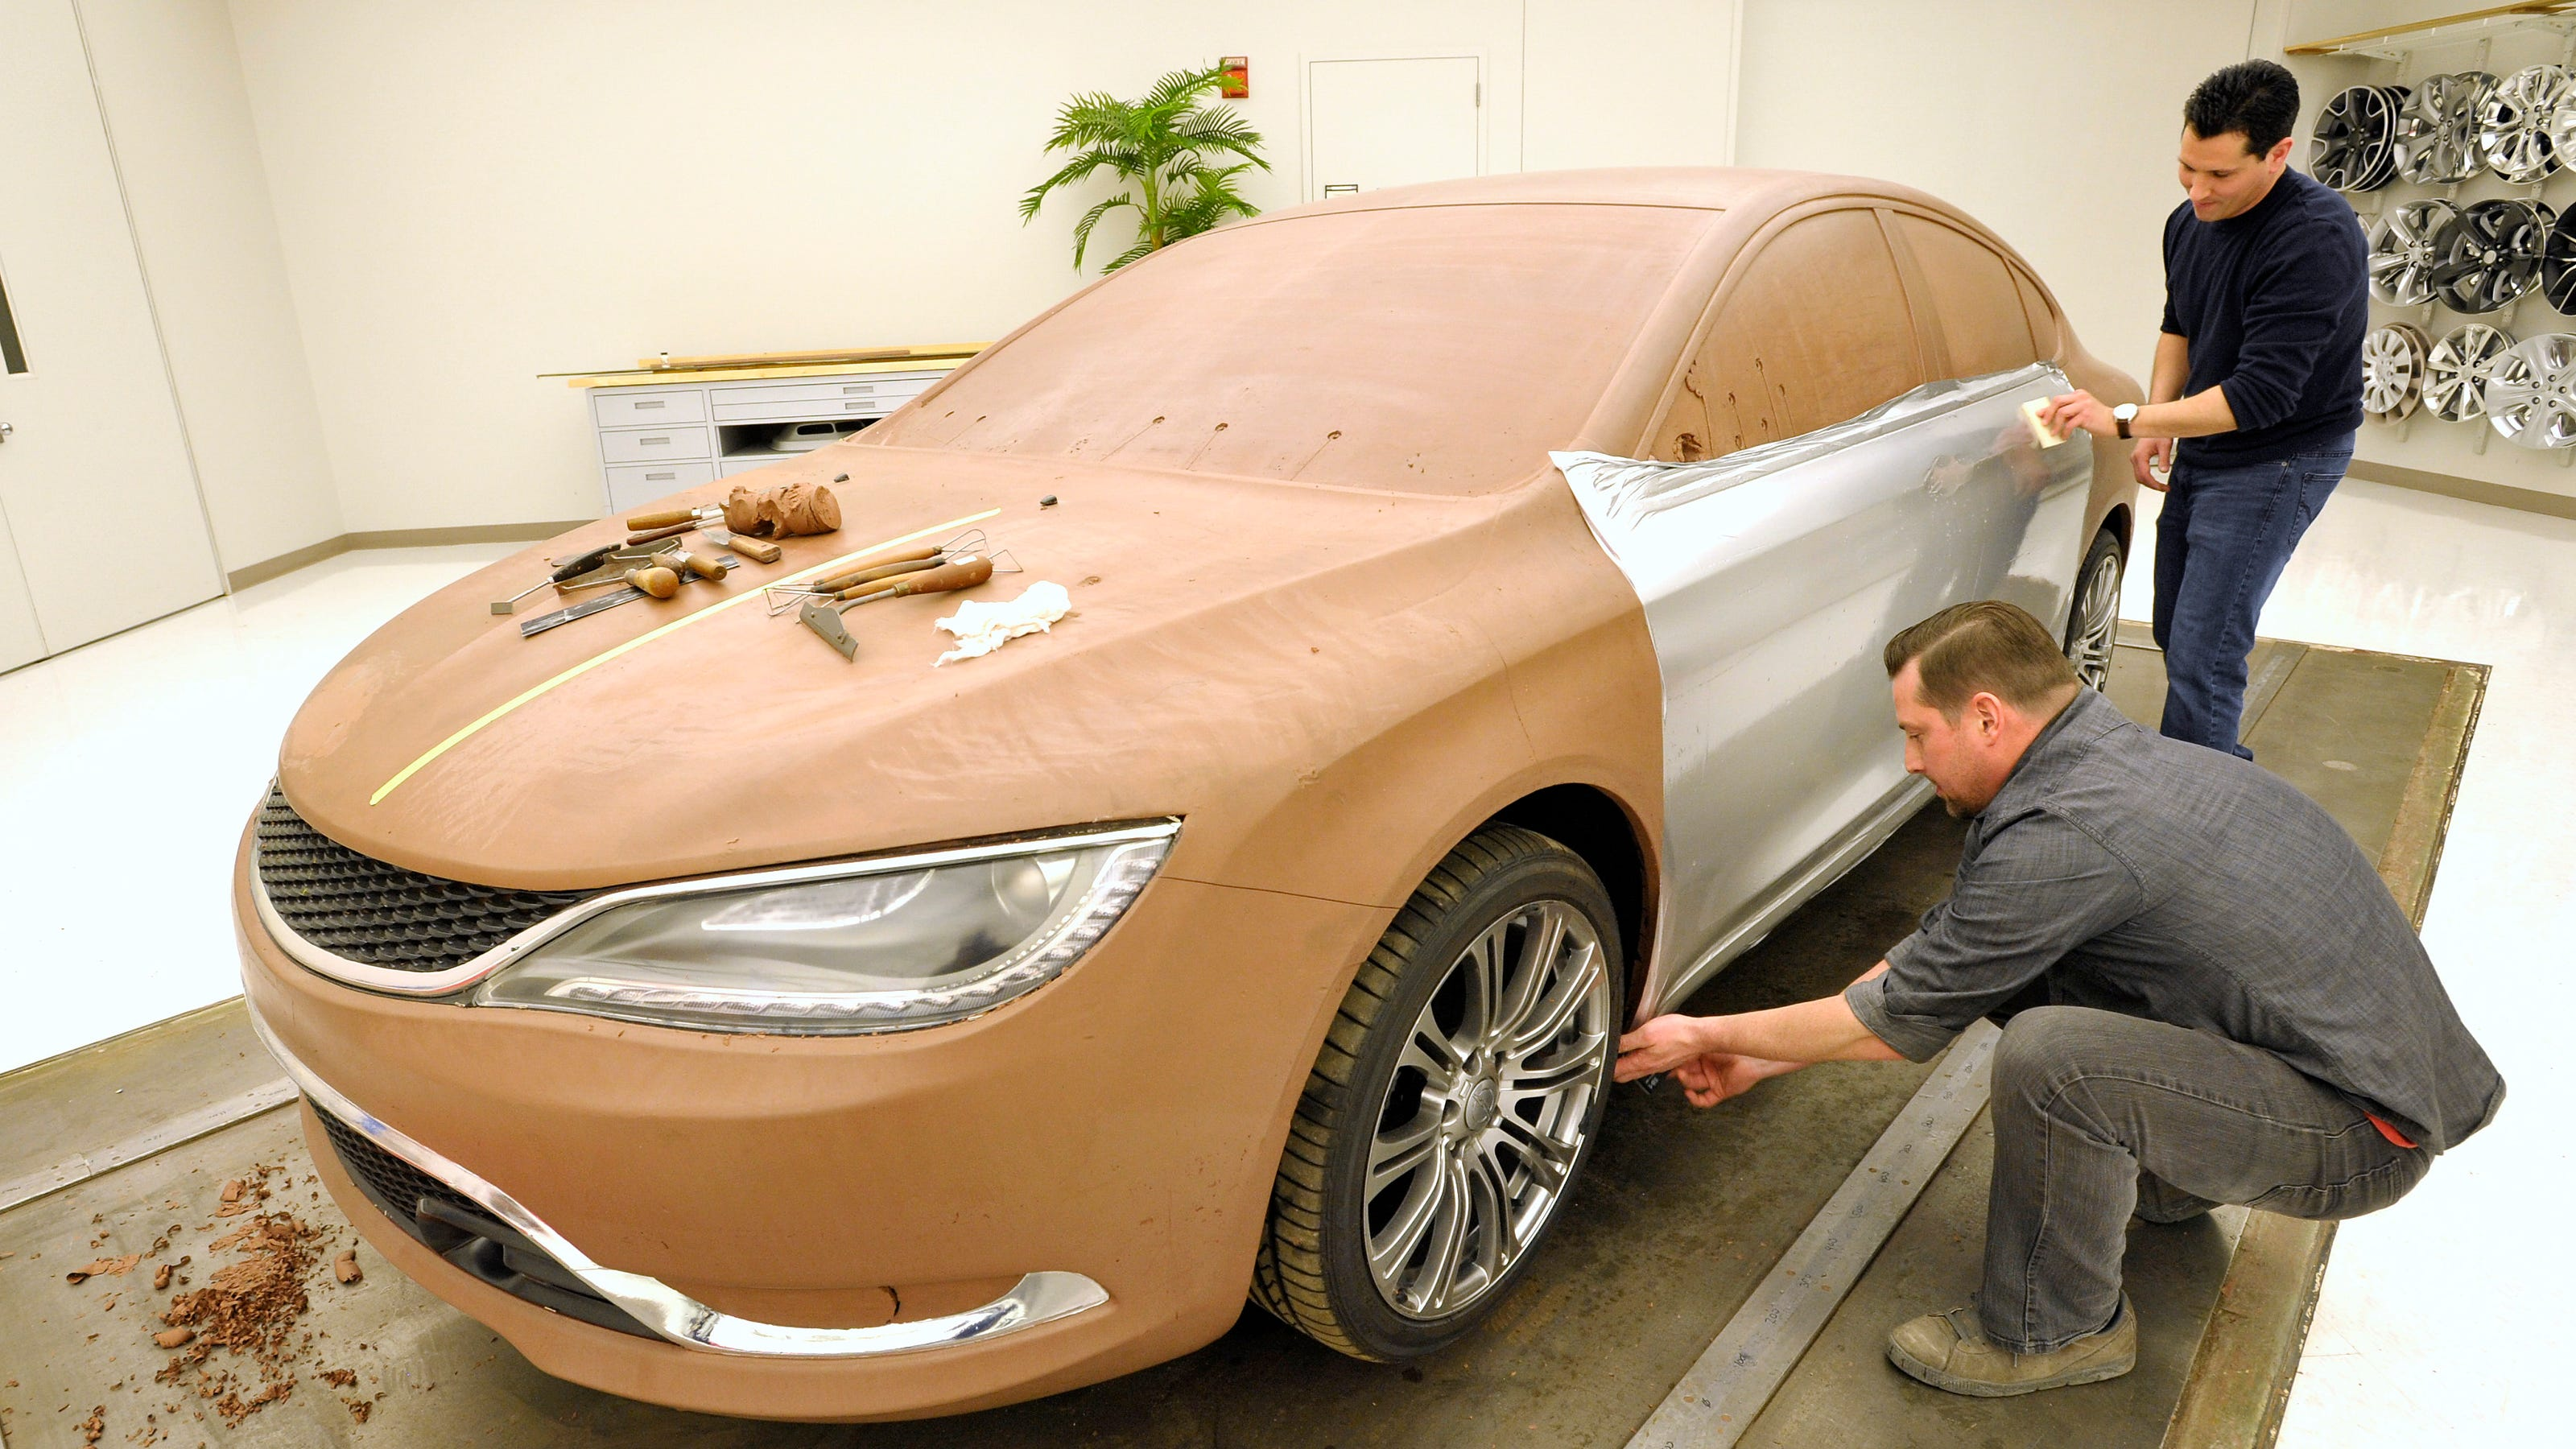 Future Of Auto Design Still In Clay Modelers Hands